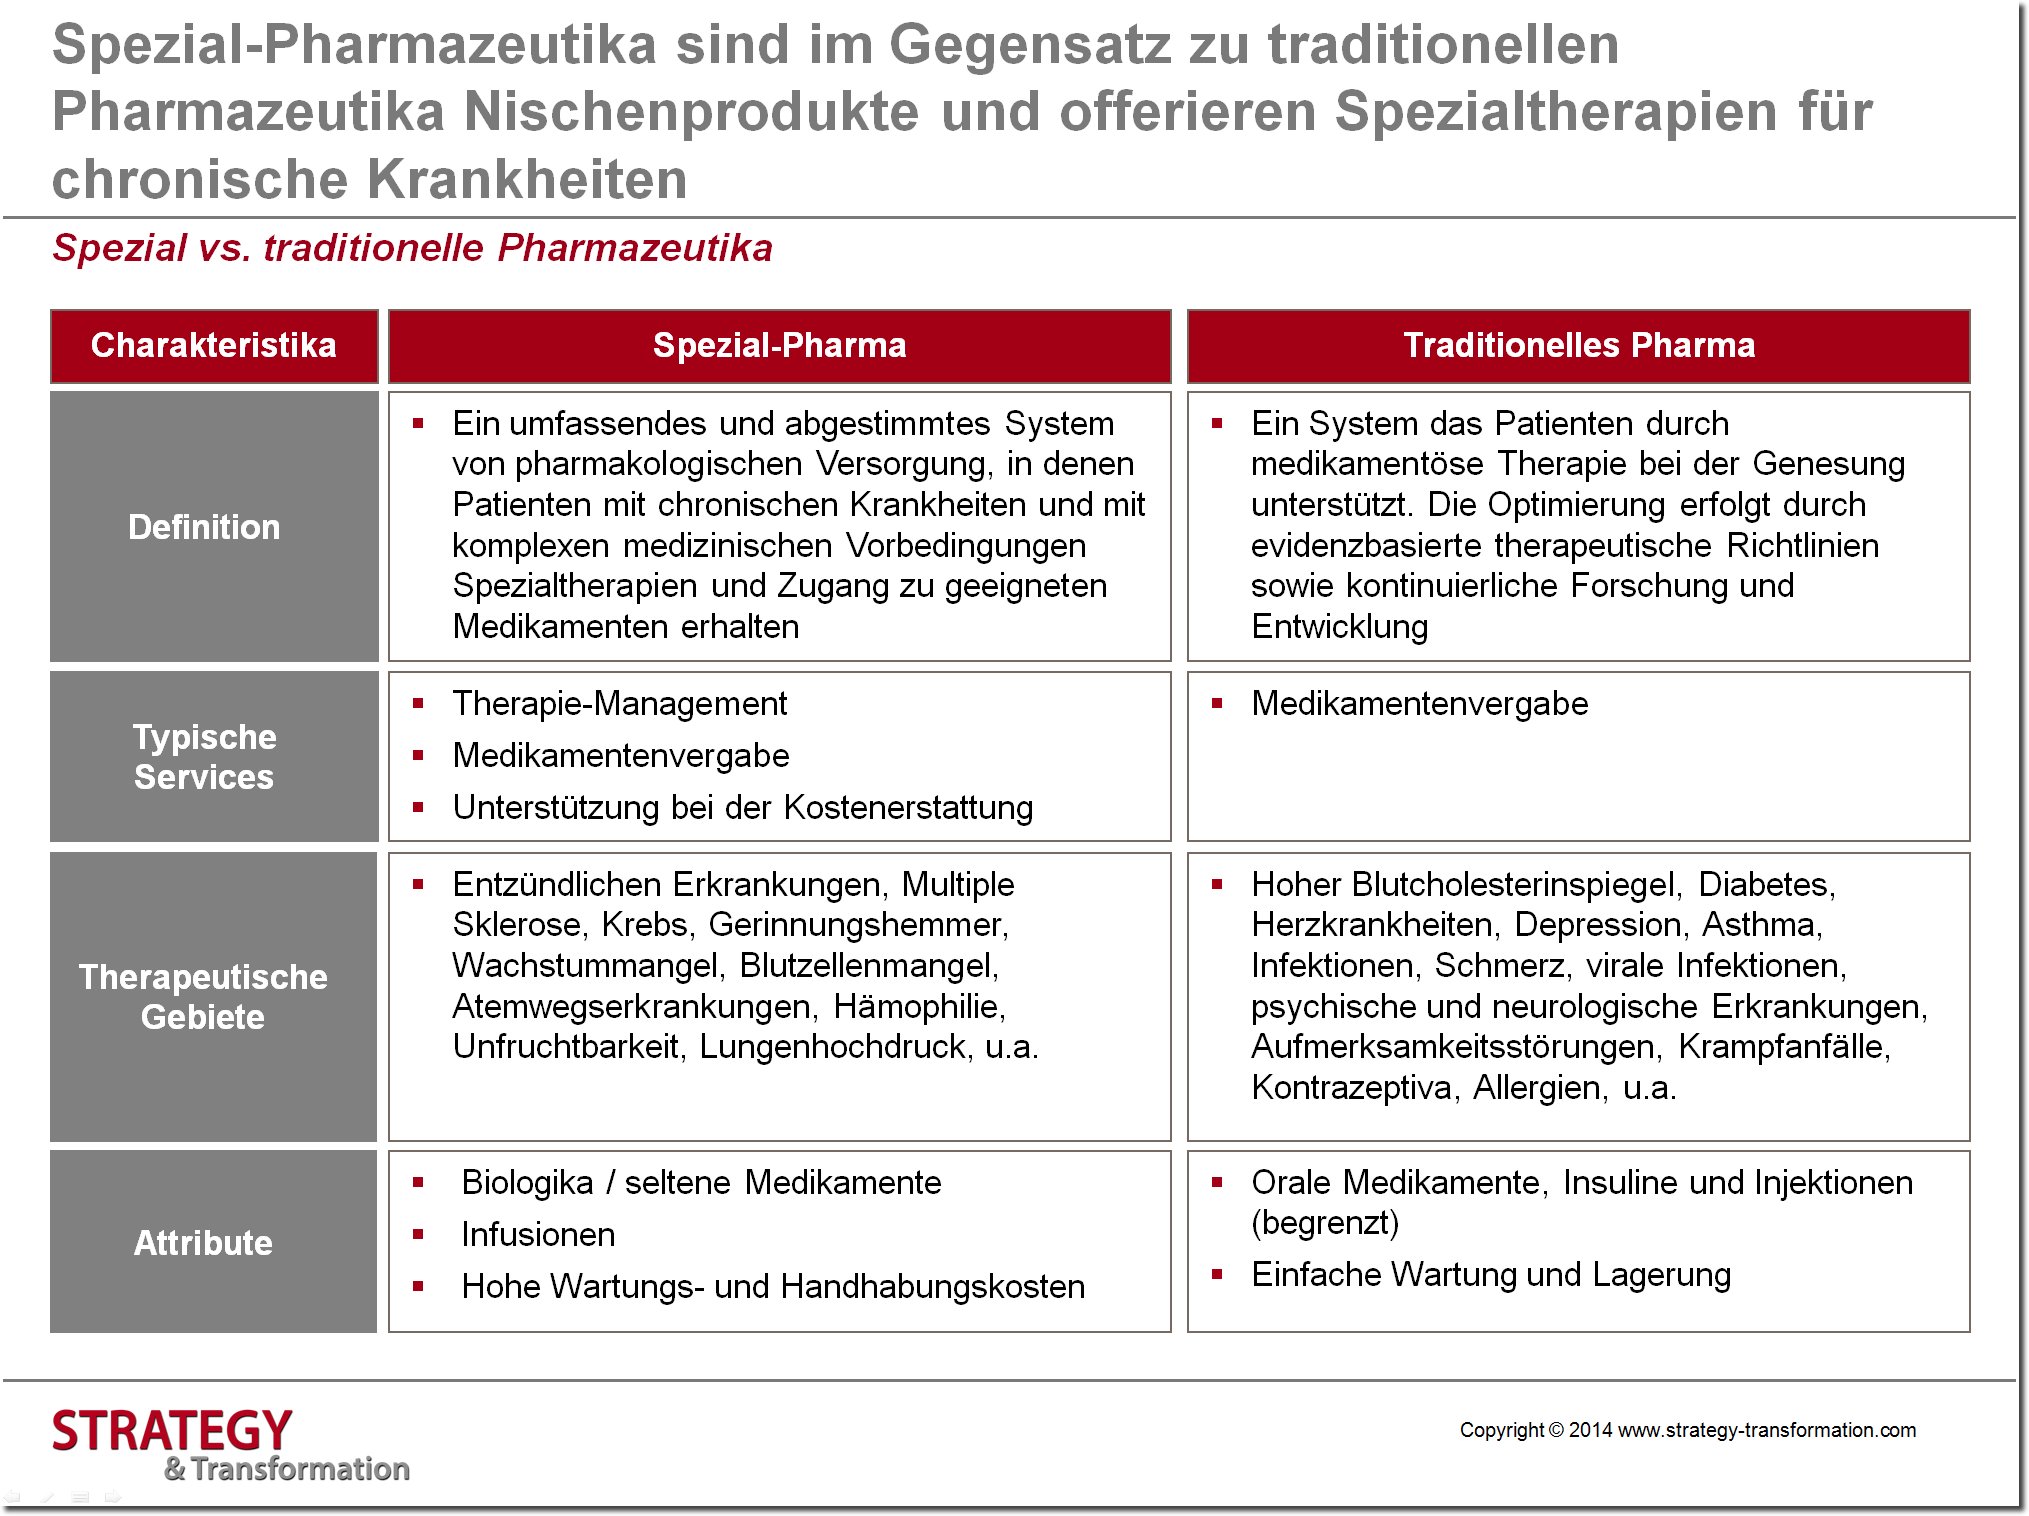 Health 2.0_Spezial vs traditionelle Pharma